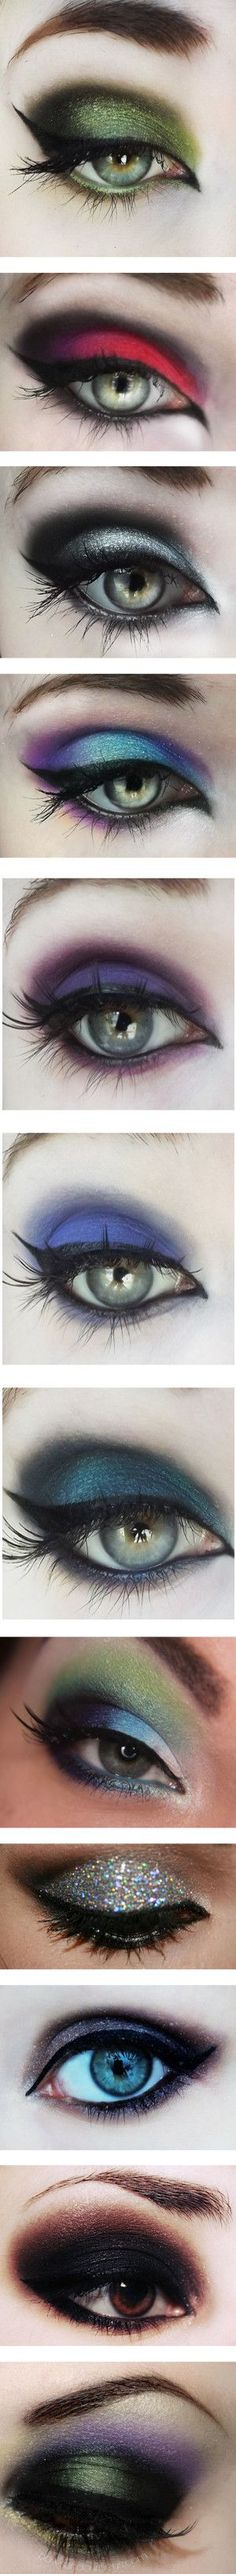 intense eye makeup #beauty #art #eyes #eyemakeup #mascara #eyeliner #beauty #makeup #popular